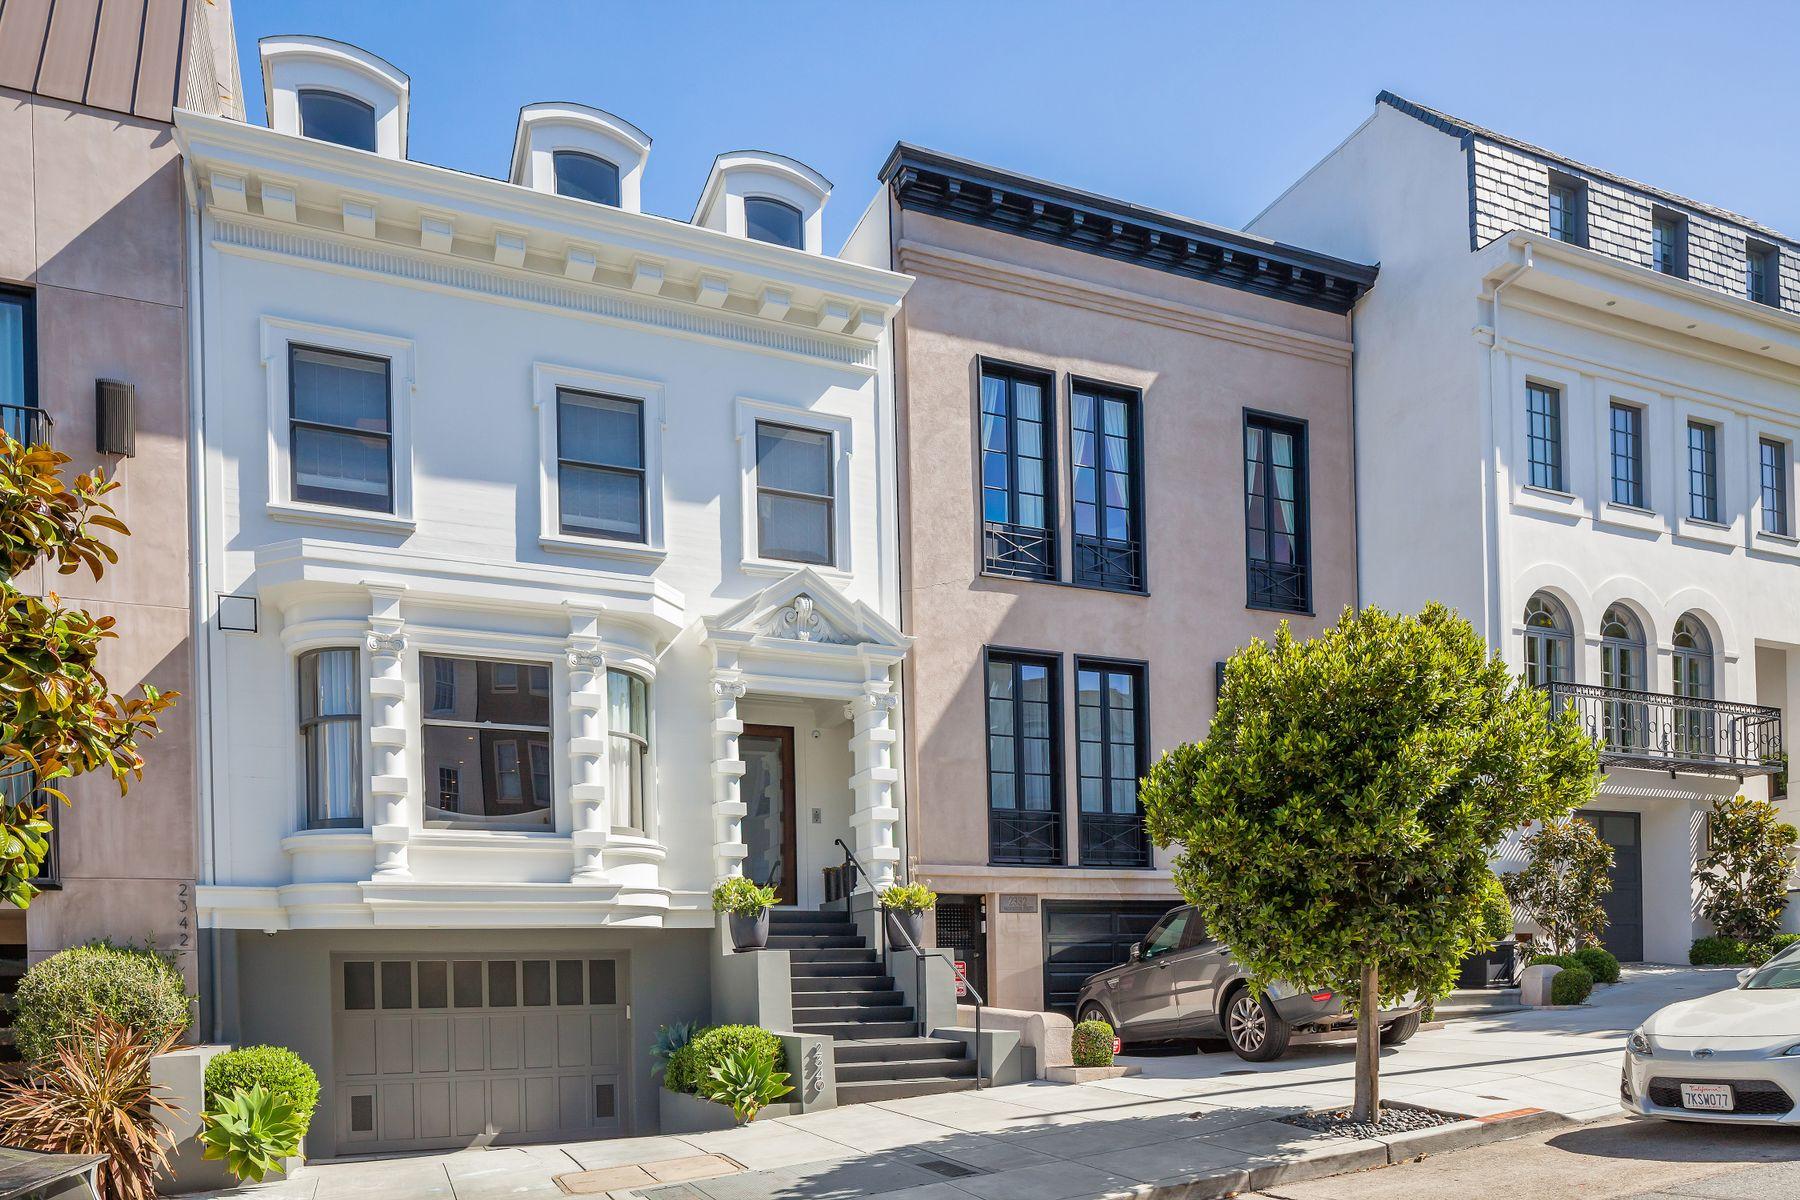 Single Family Homes for Sale at Pacific Heights Contemporary Chic San Francisco, California 94115 United States